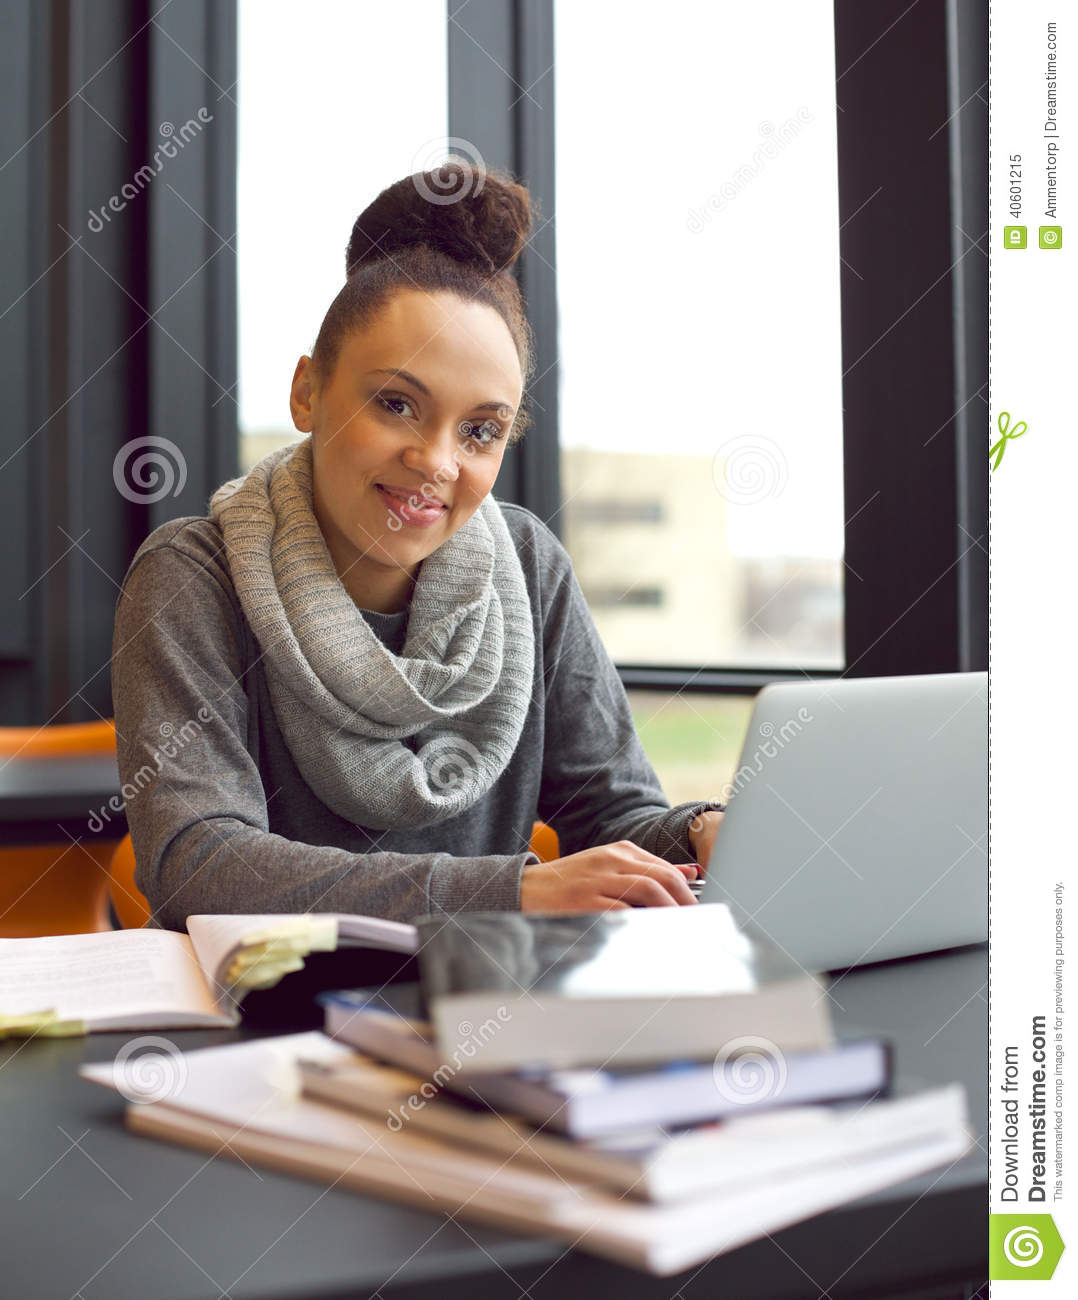 Young woman studying at a desk using books and laptop